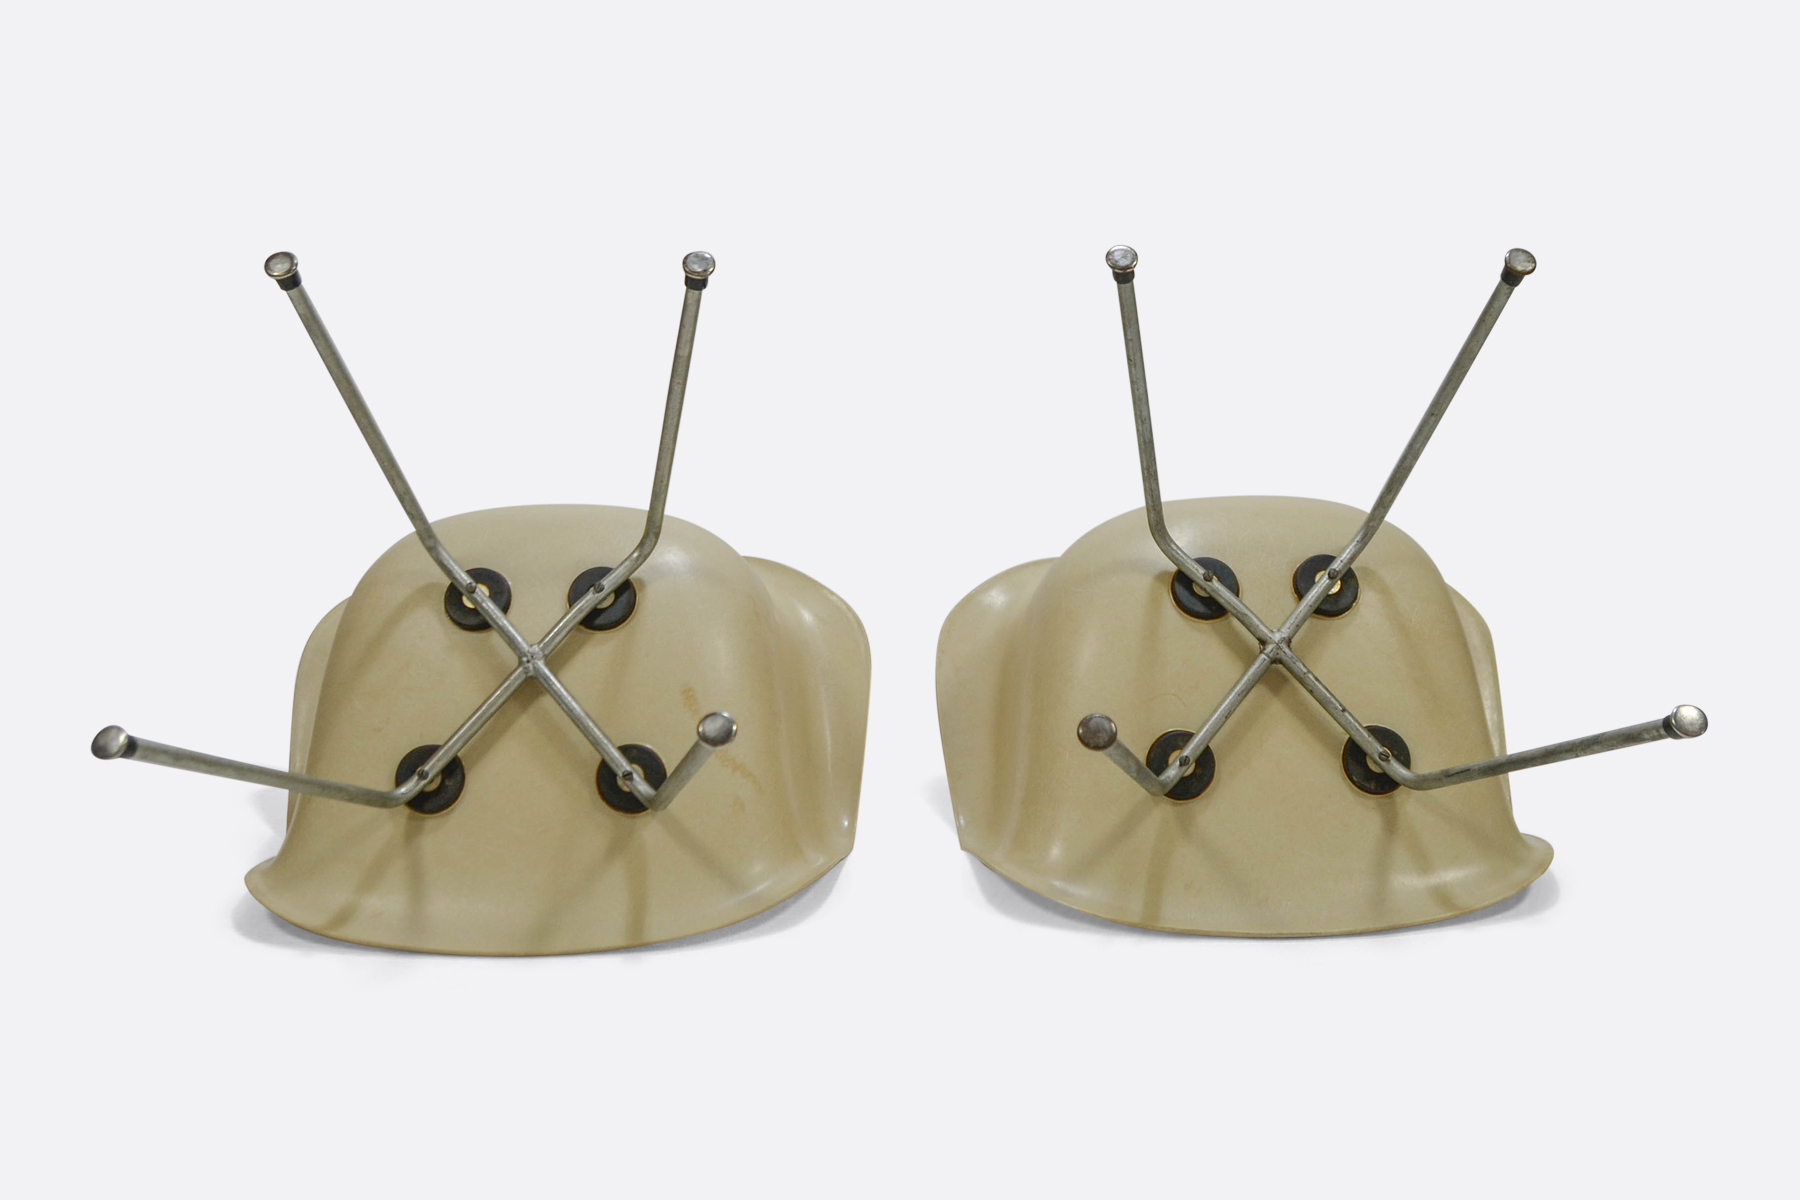 Eames DAX set of 2 - Off White - Zenith Plastic4